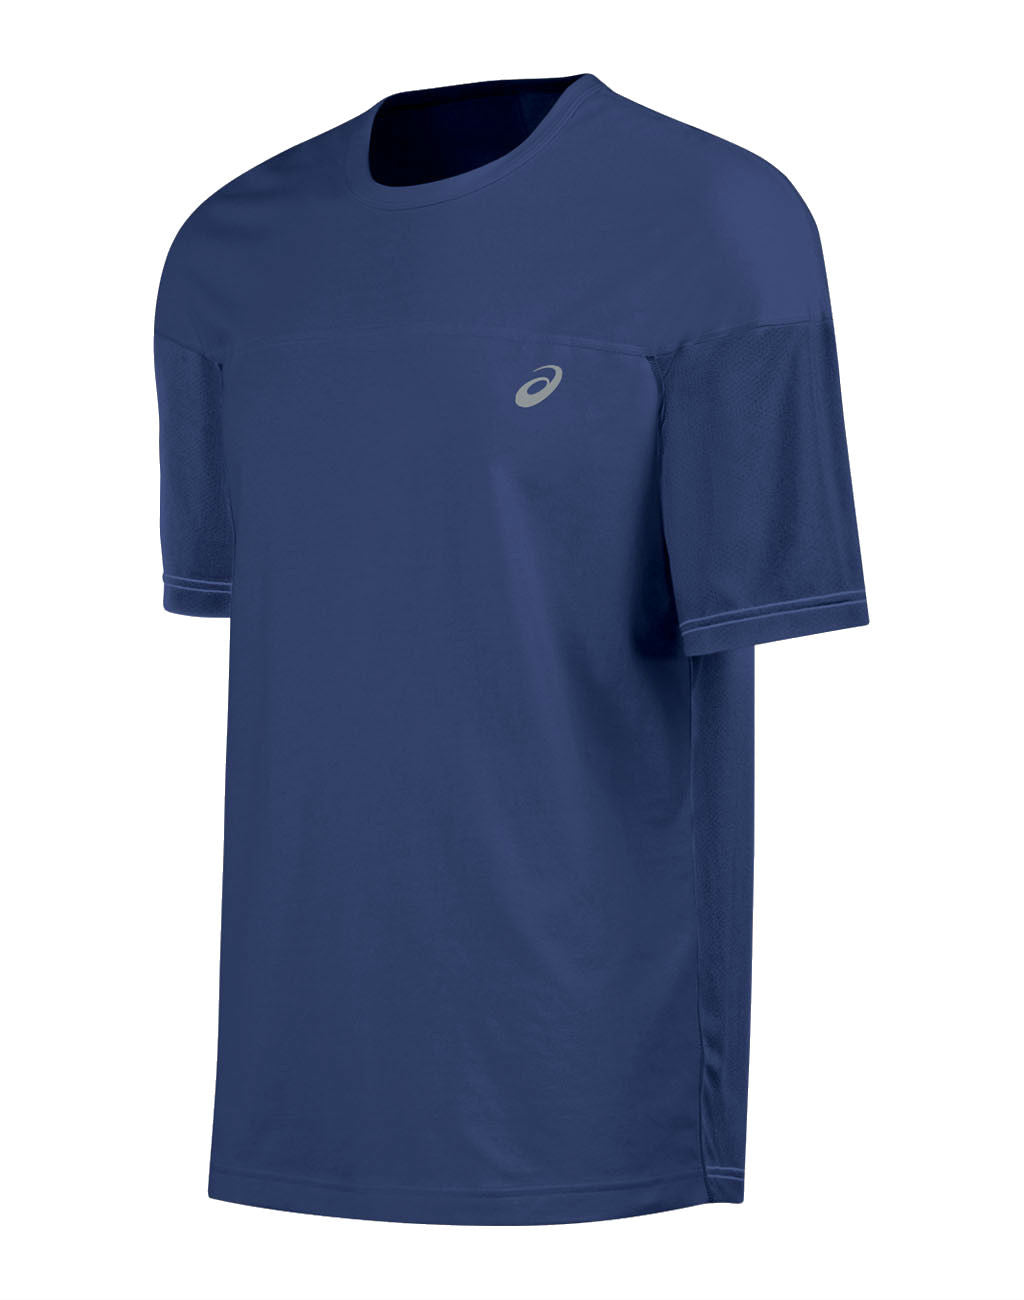 ASICS ASX Dry Short Sleeve Top (Men's)Navy_master_image